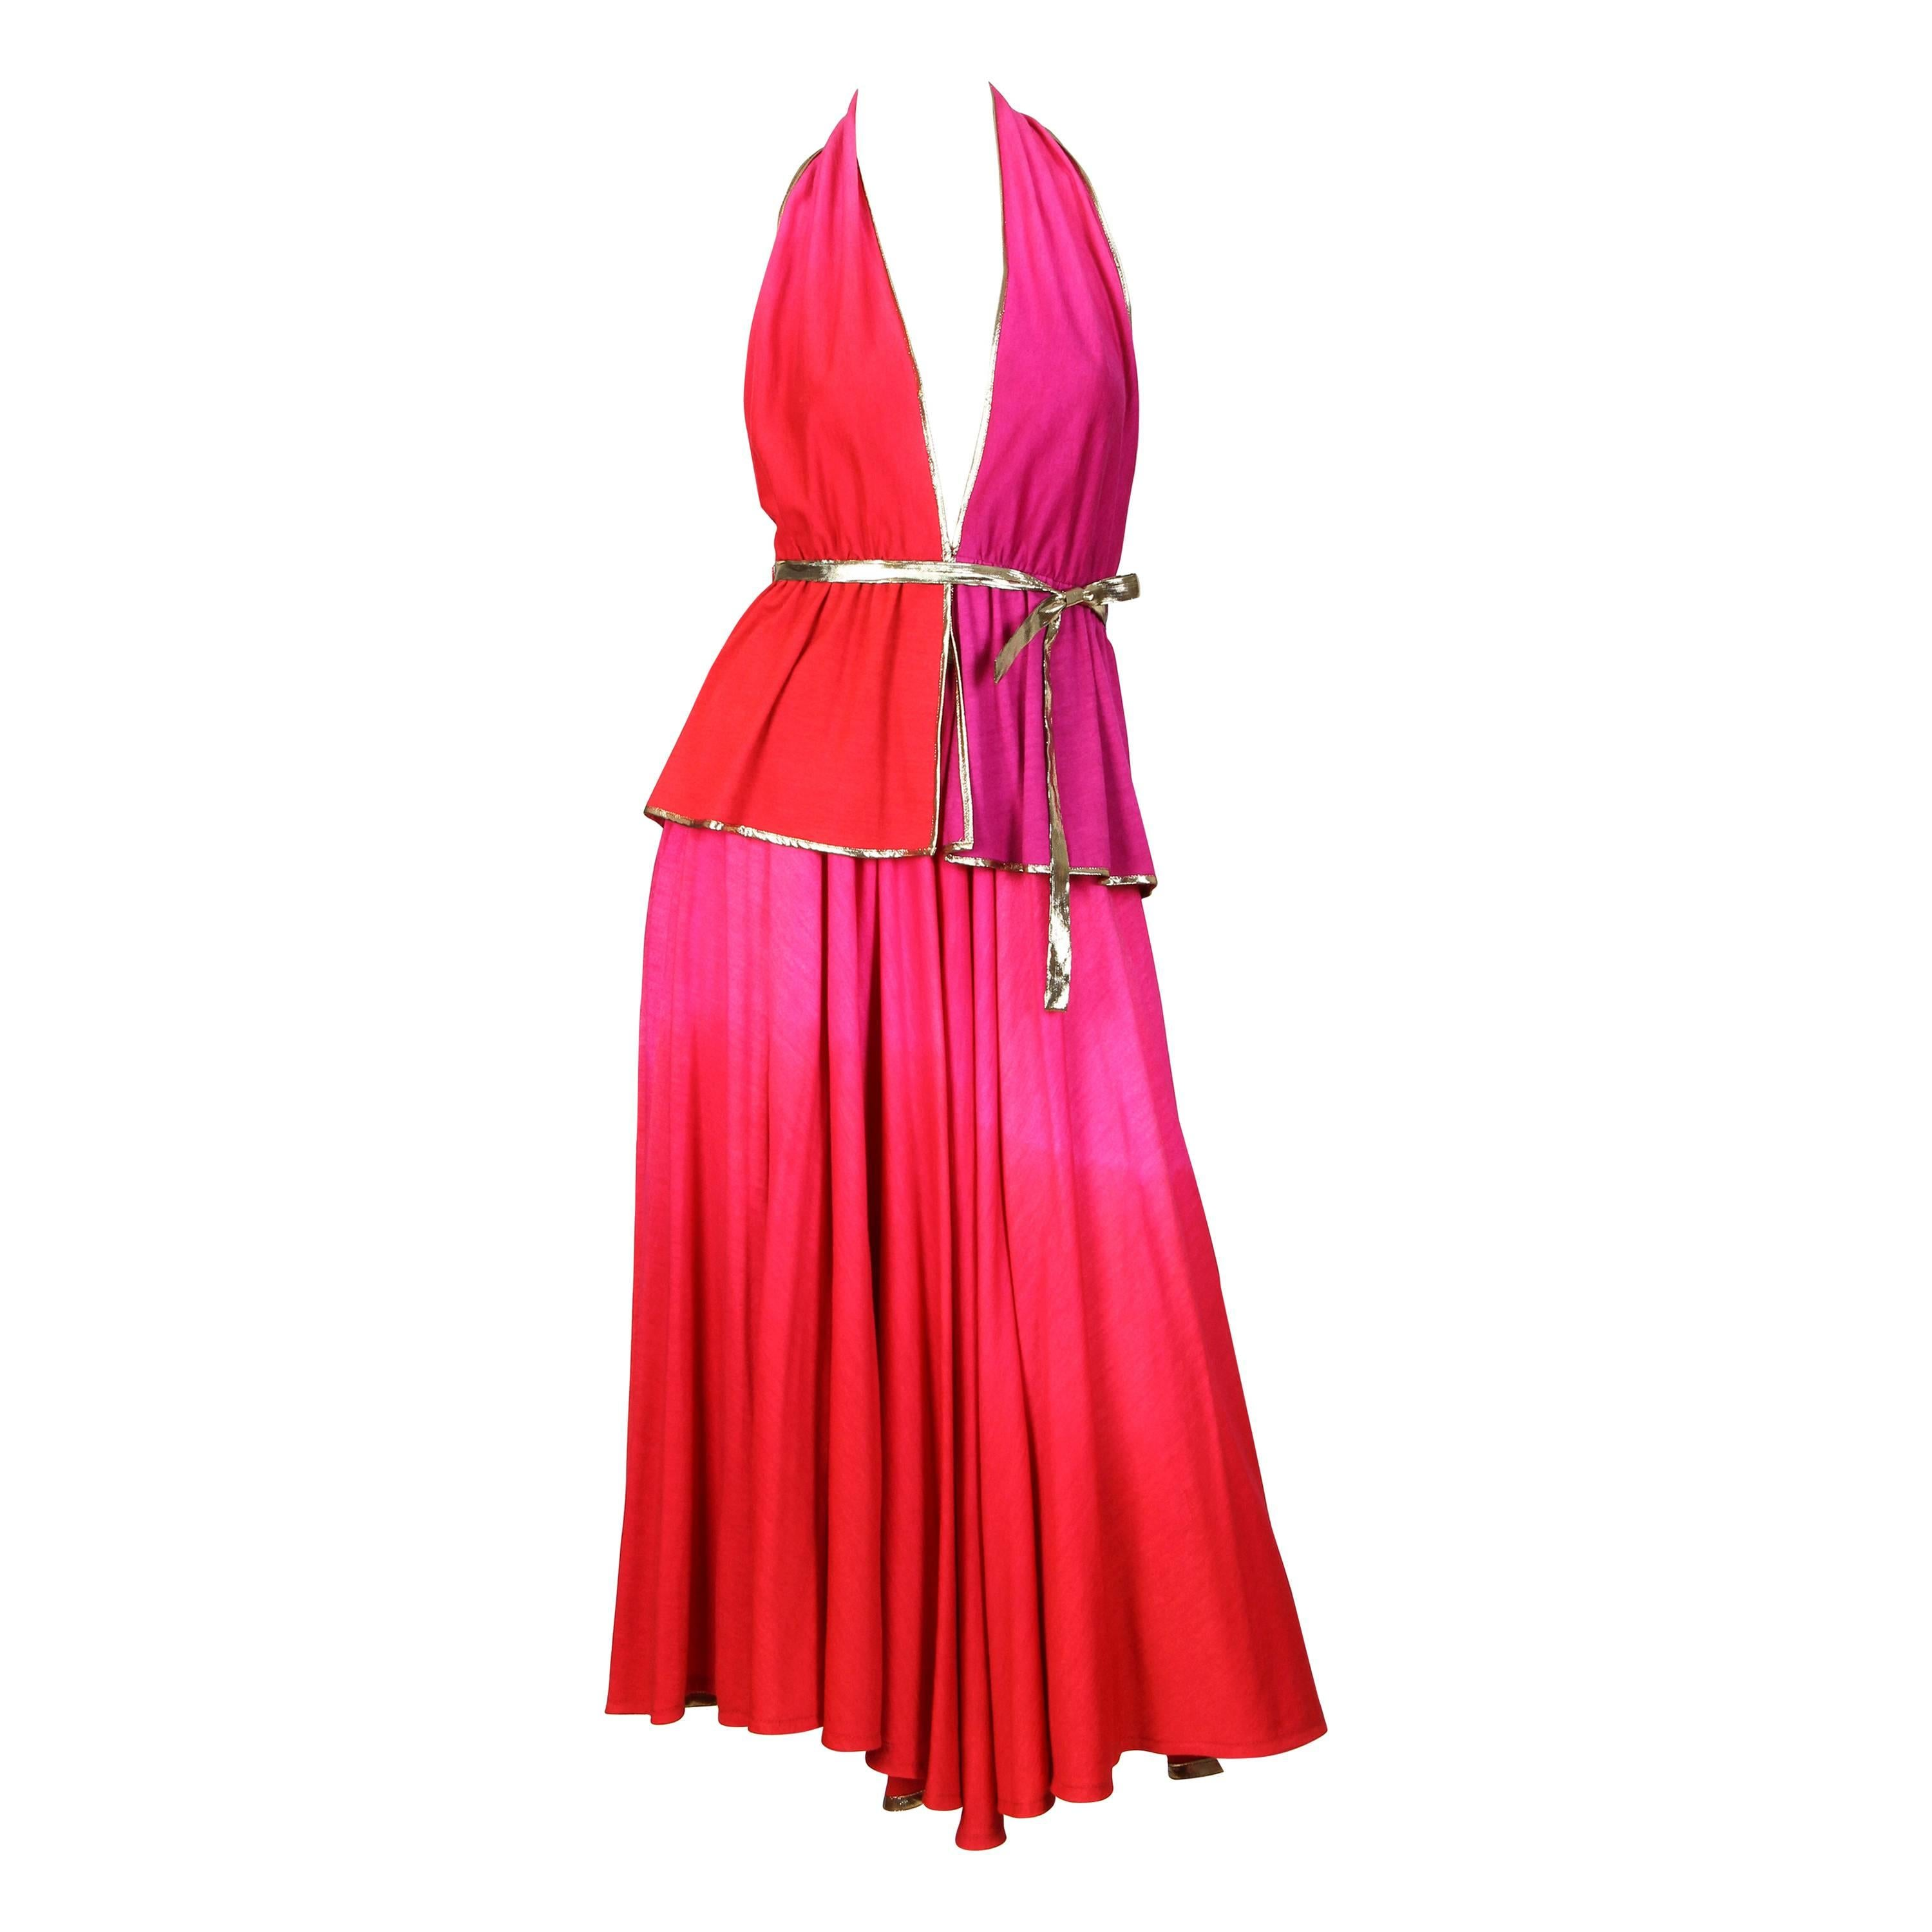 1970S GIORGIO SANT'angelo Pink & Purple Wool Jersey Ombré Dyed Halter Top Skirt